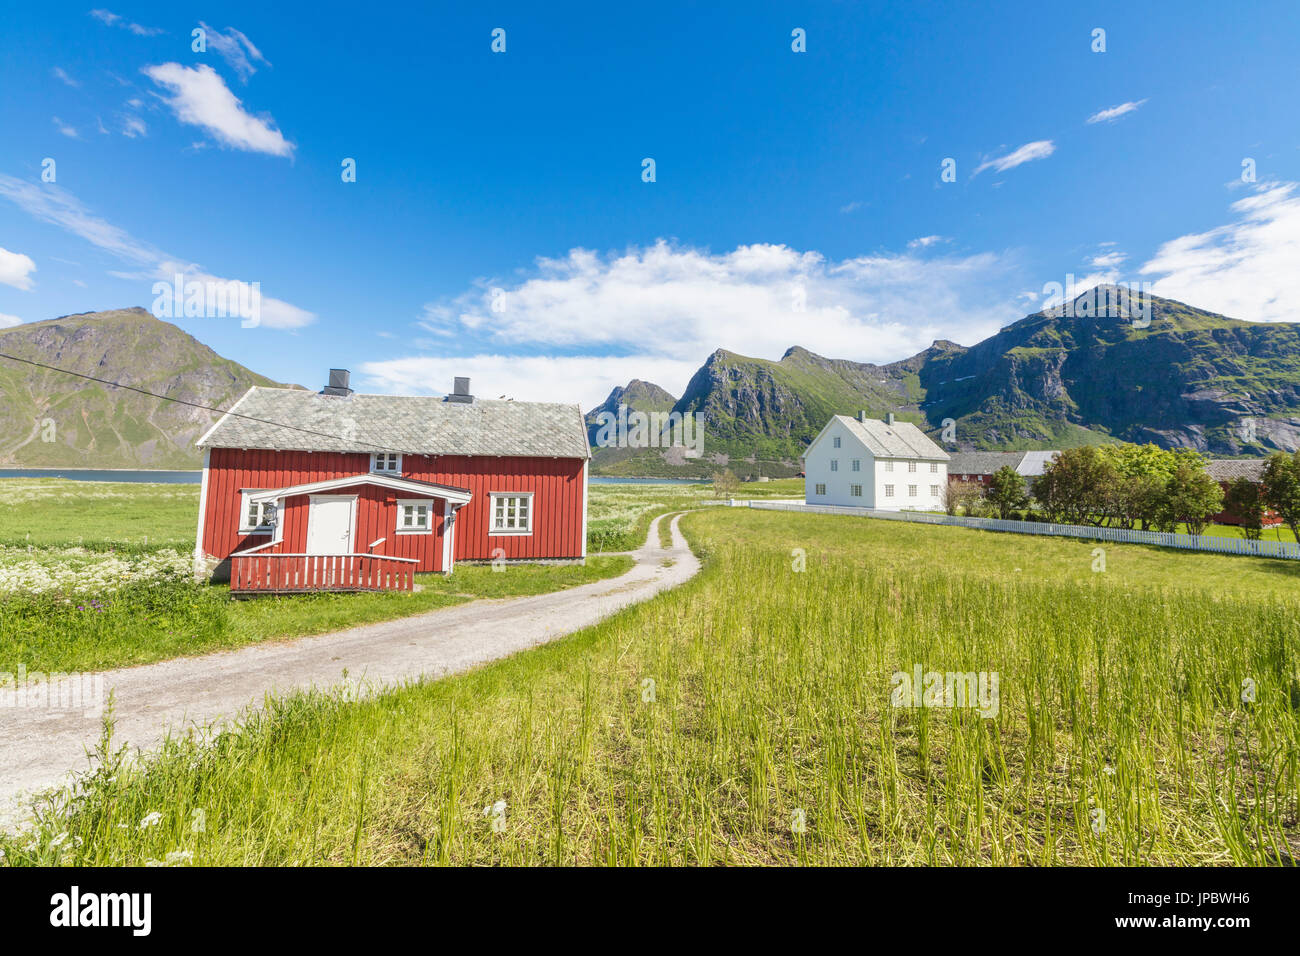 Green grass and meadows frame the typical houses called Rorbu in the fishing village of Flakstad Lofoten Islands Norway Europe - Stock Image